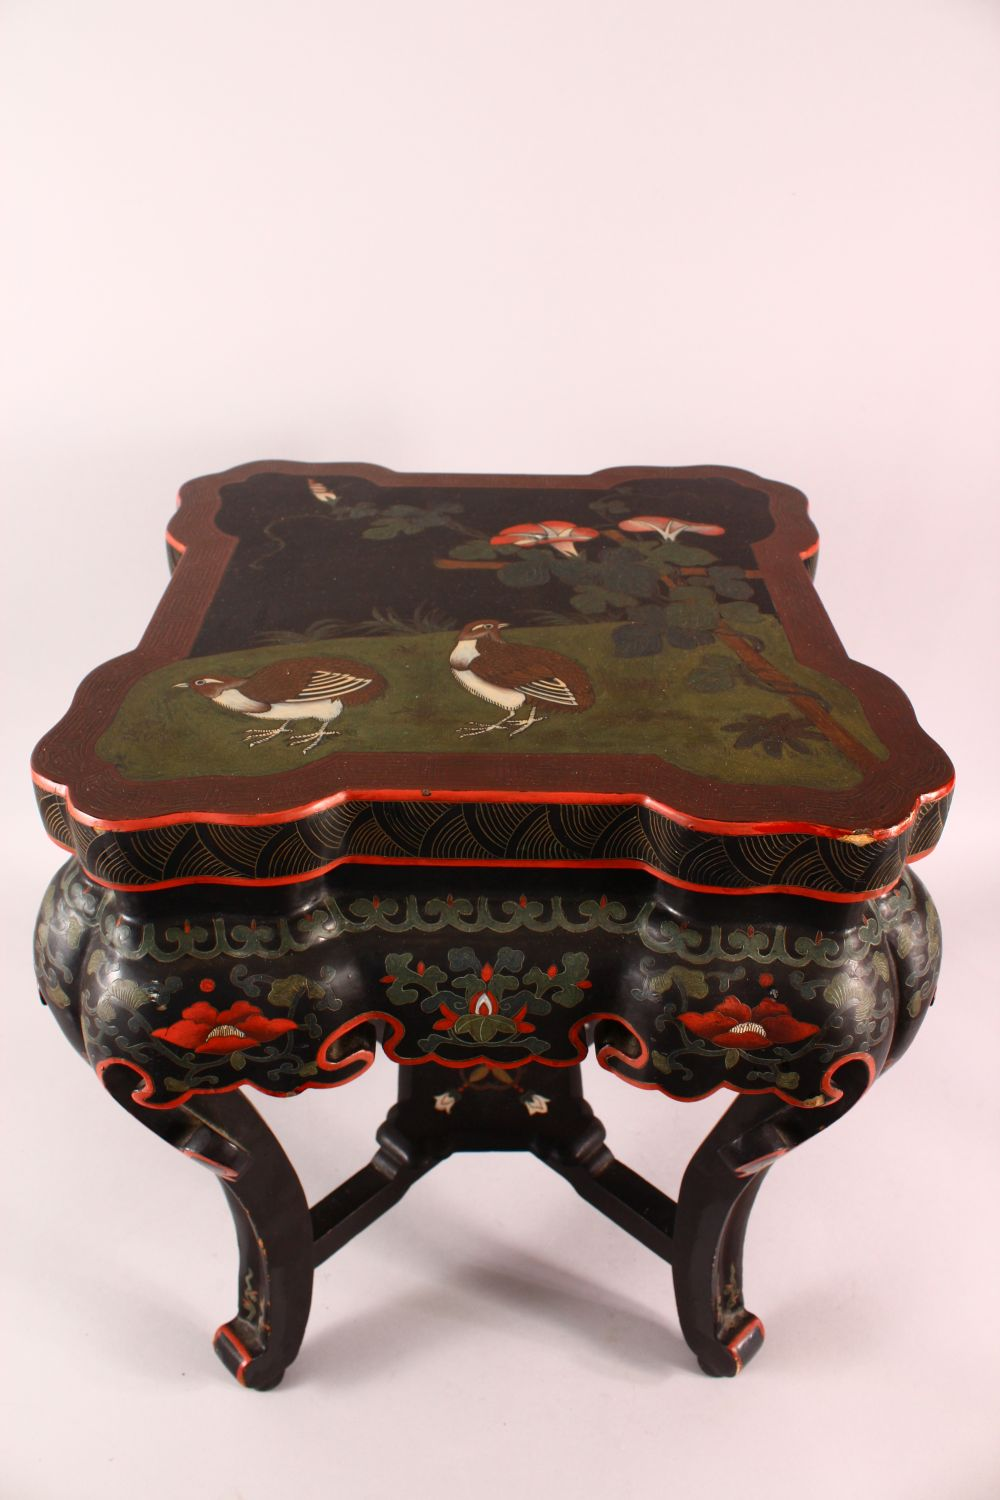 A GOOD CHINESE CARVED WOOD & LACQUER DECORATED LOW TABLE, the top with decoration of quails in - Image 2 of 6